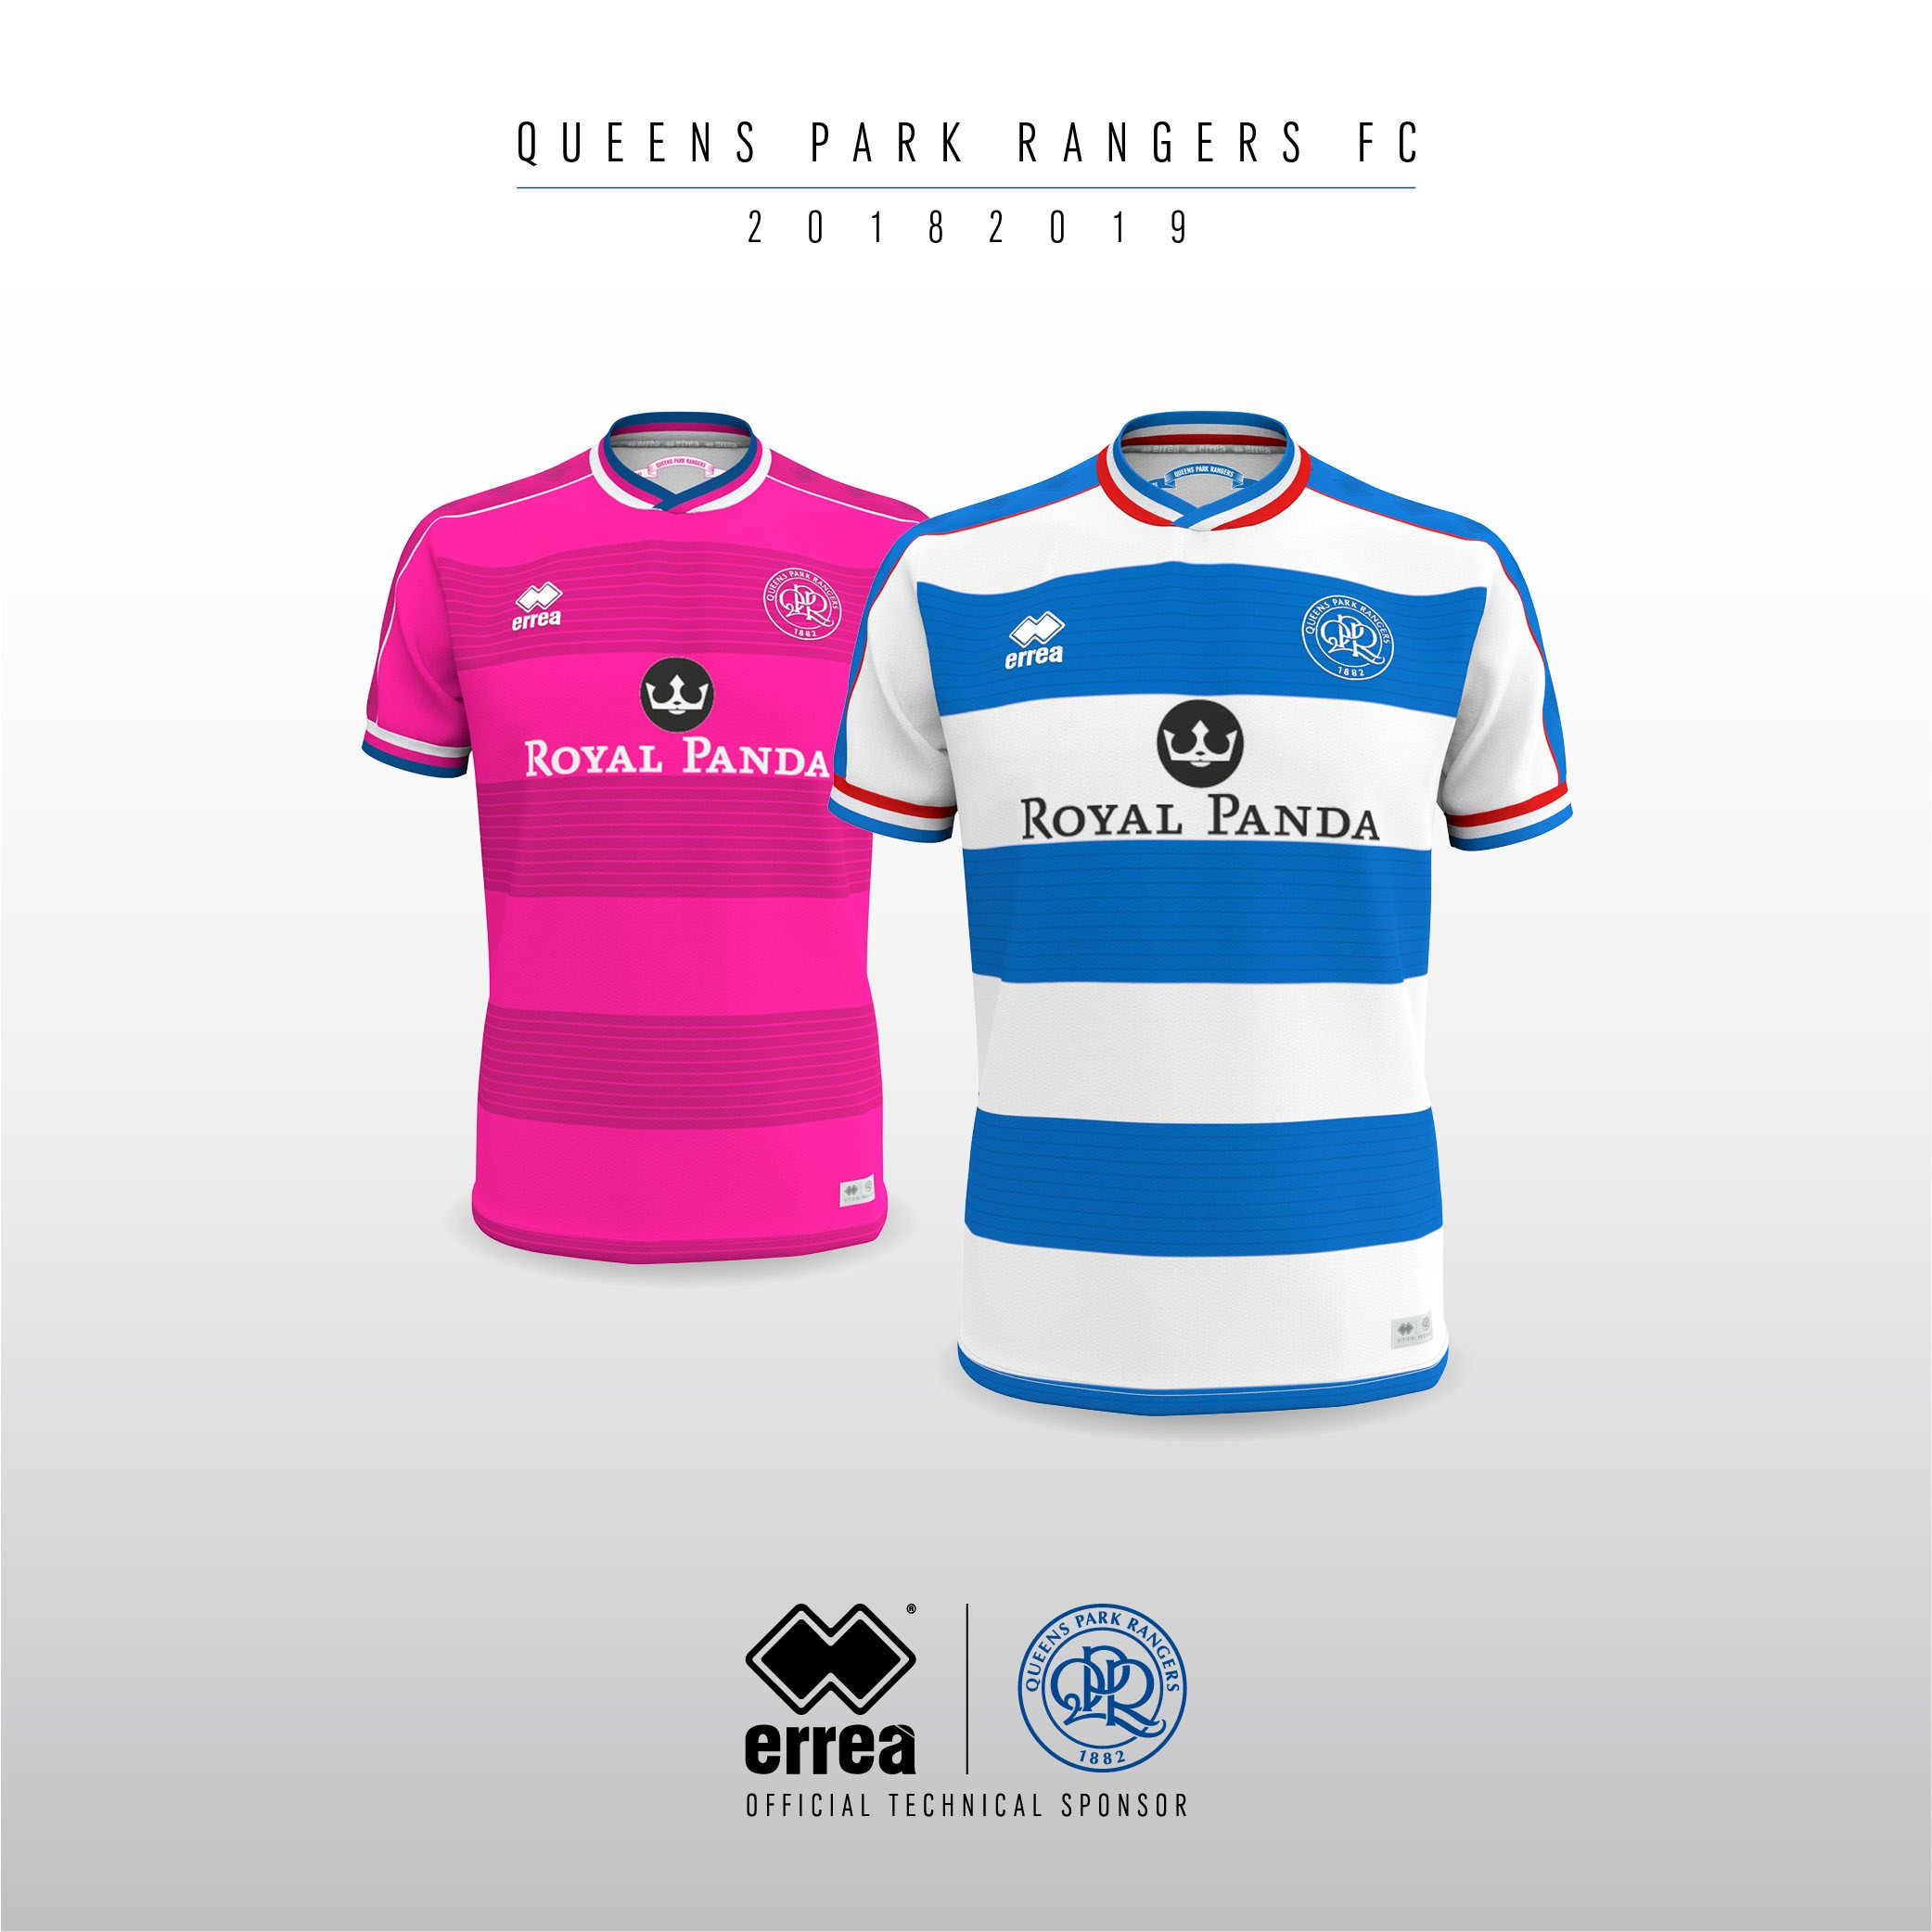 Queens Park Rangers FC unveil their new official 2018-2019 kits from Erreà Sport